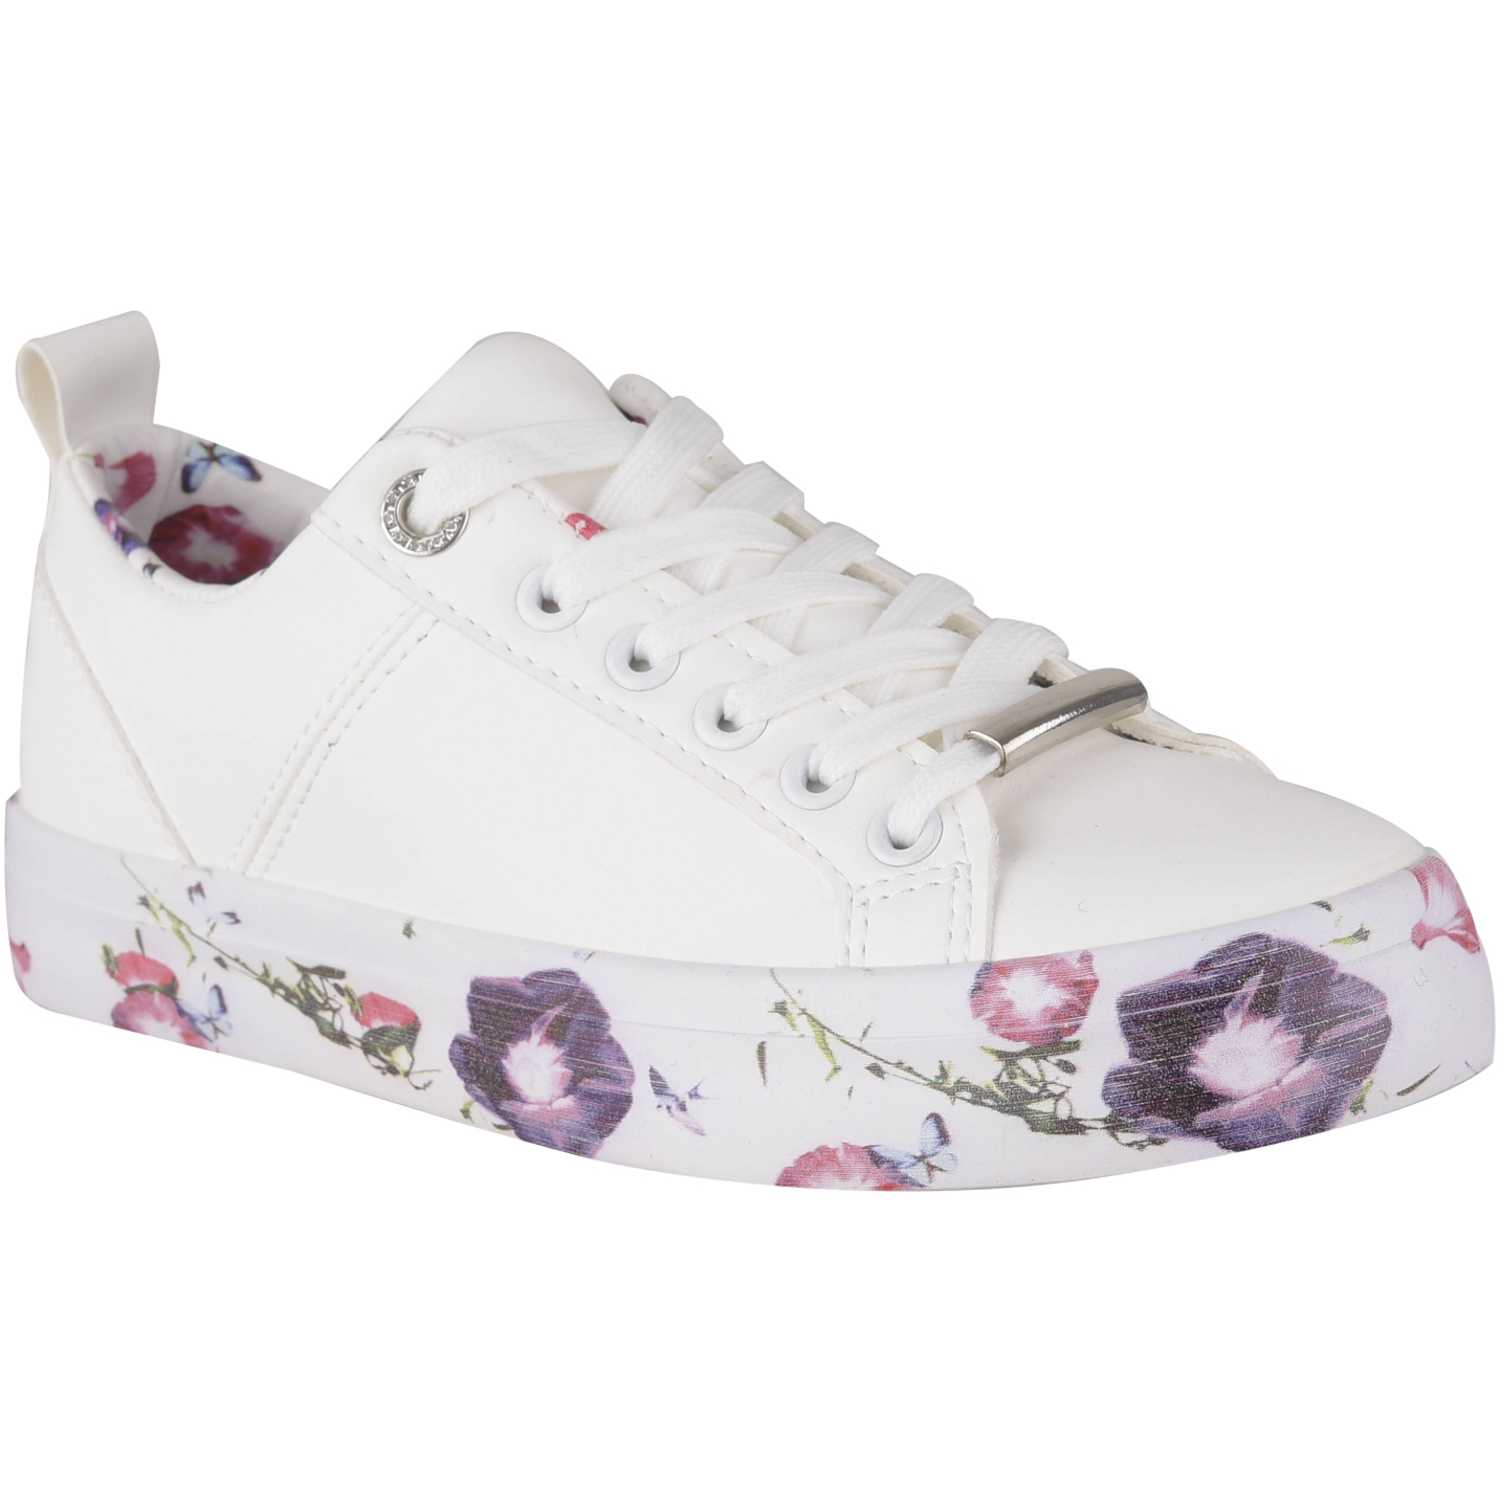 Platanitos zc 2812 Blanco Zapatillas Fashion